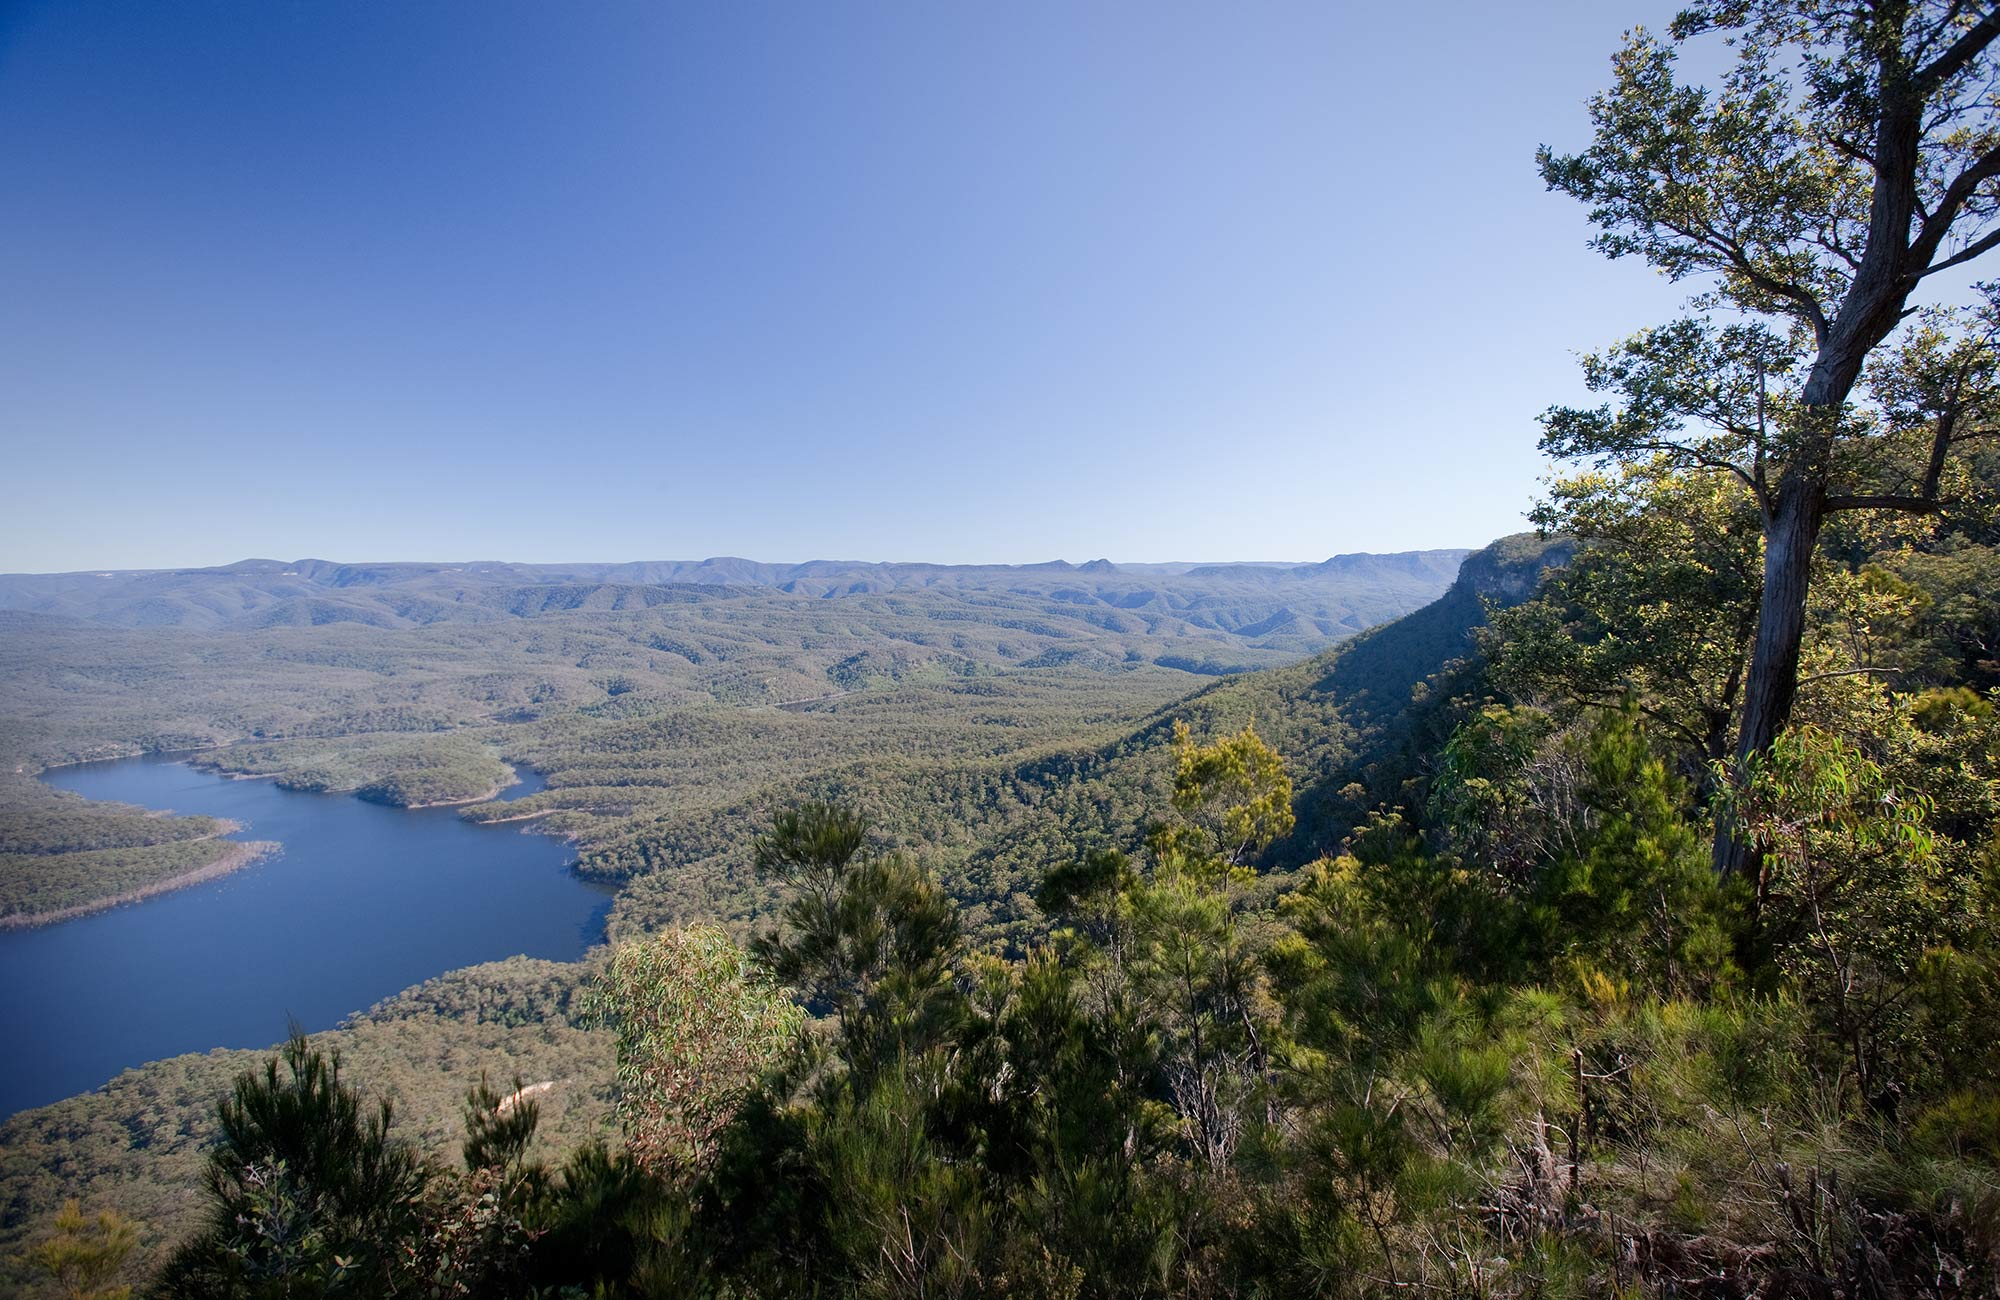 Views from McMahons Point lookout over Lake Burragorang, Blue Mountains National Park. Photo: Nick Cubbin/OEH